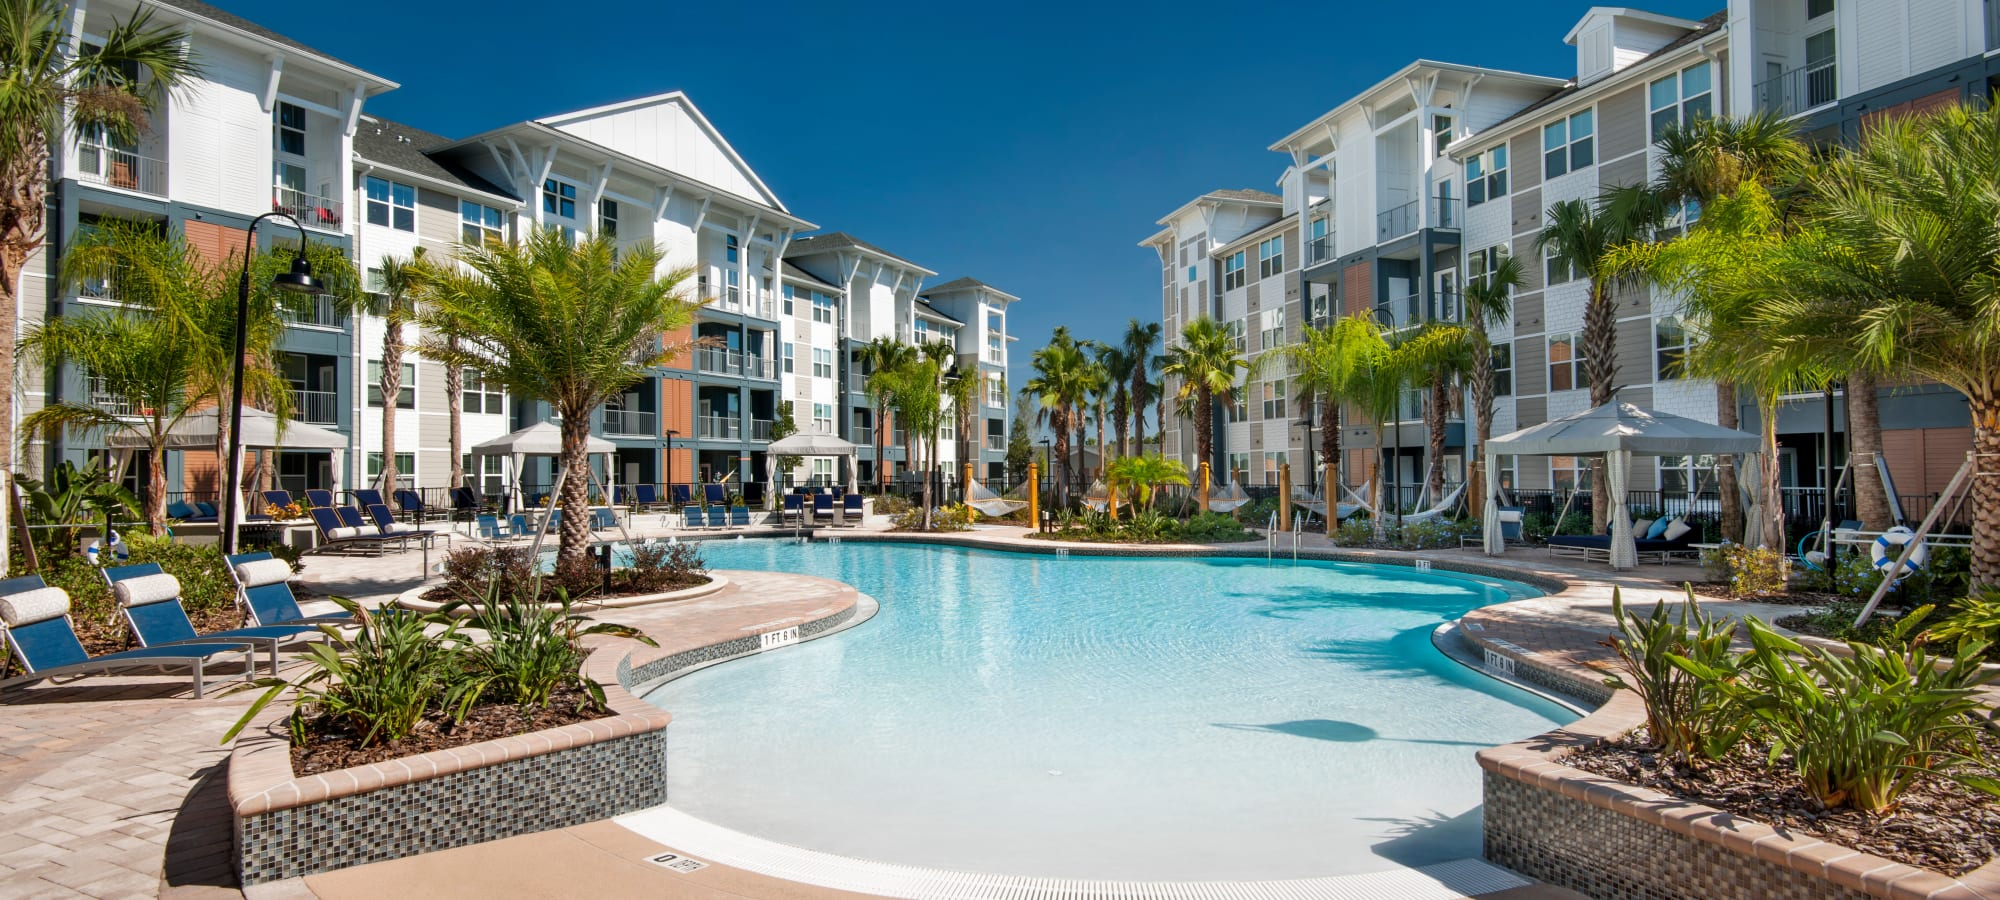 Apartments at Linden Crossroads in Orlando, Florida